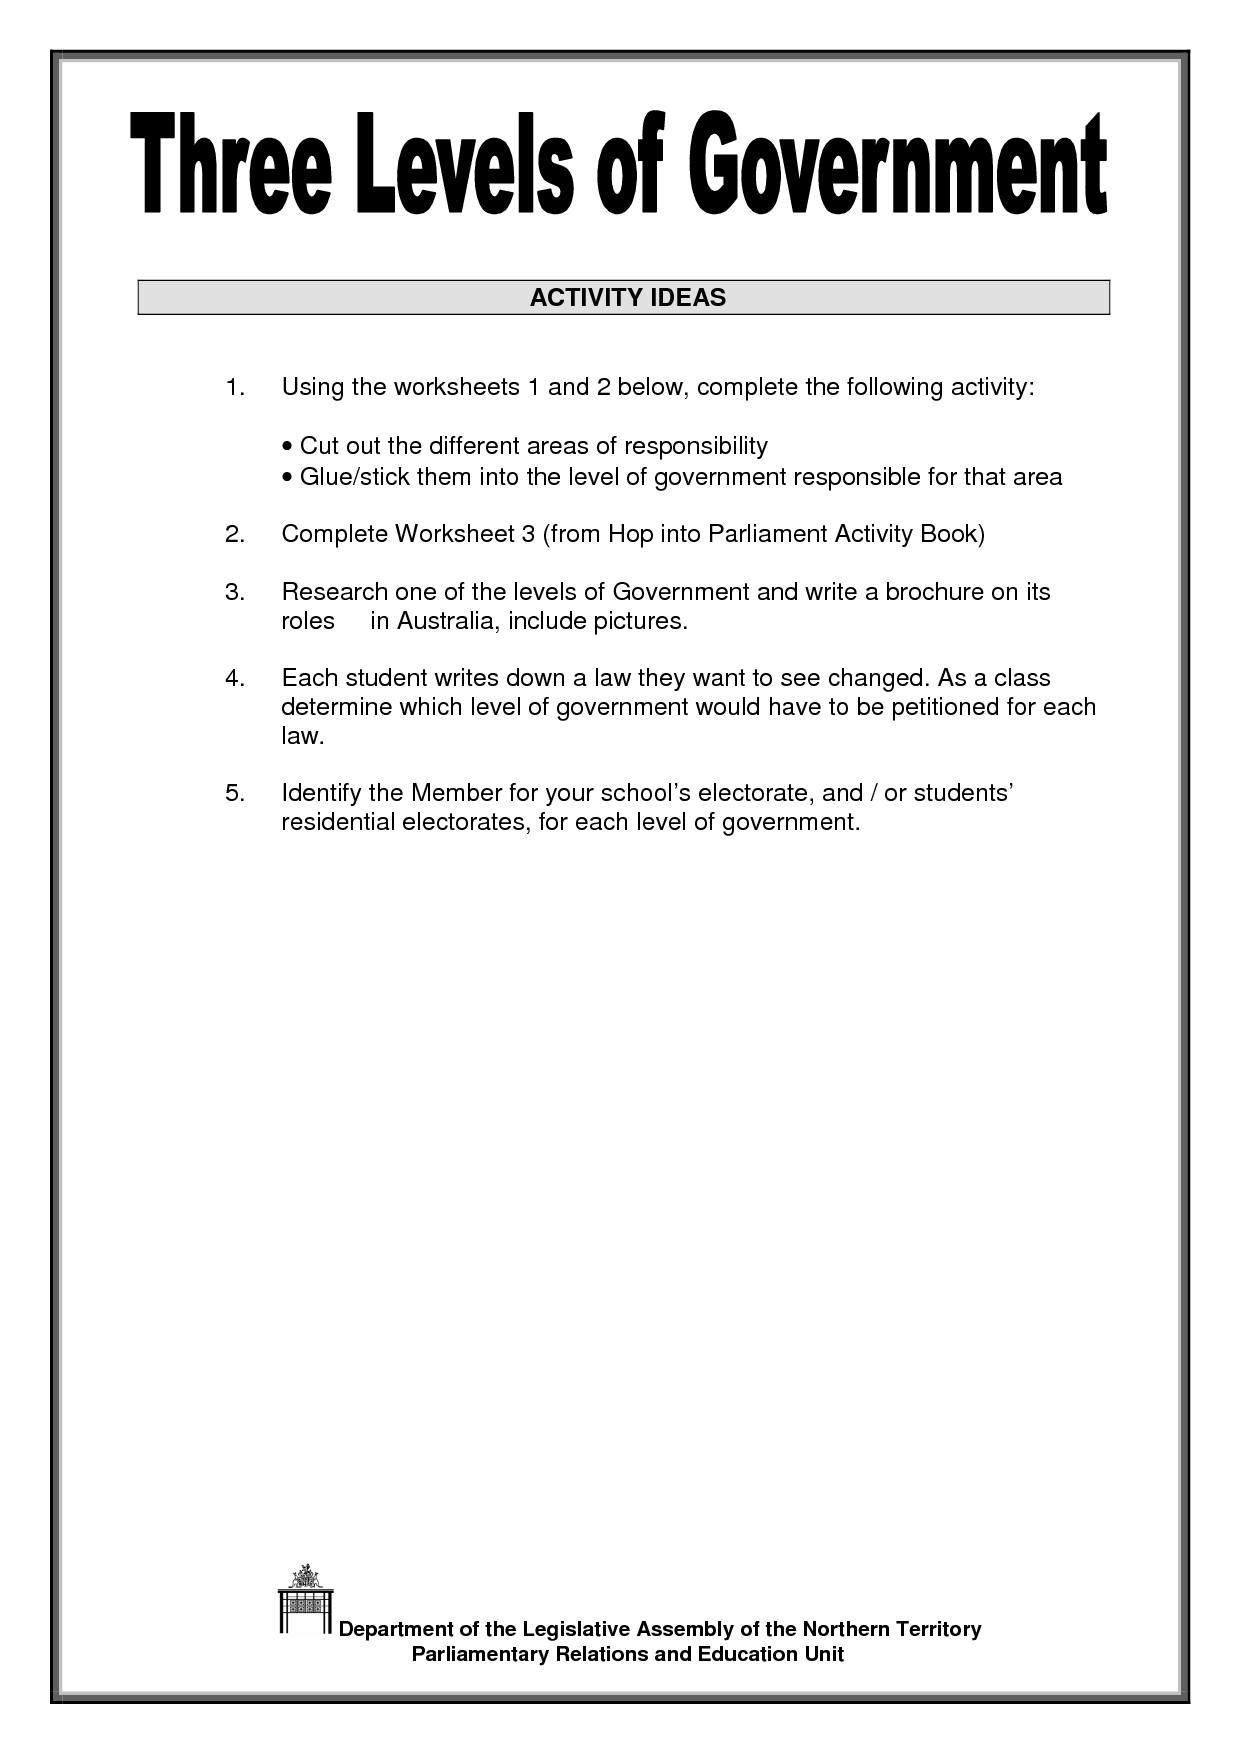 12 Best Images Of Three Branches Of Government Worksheet